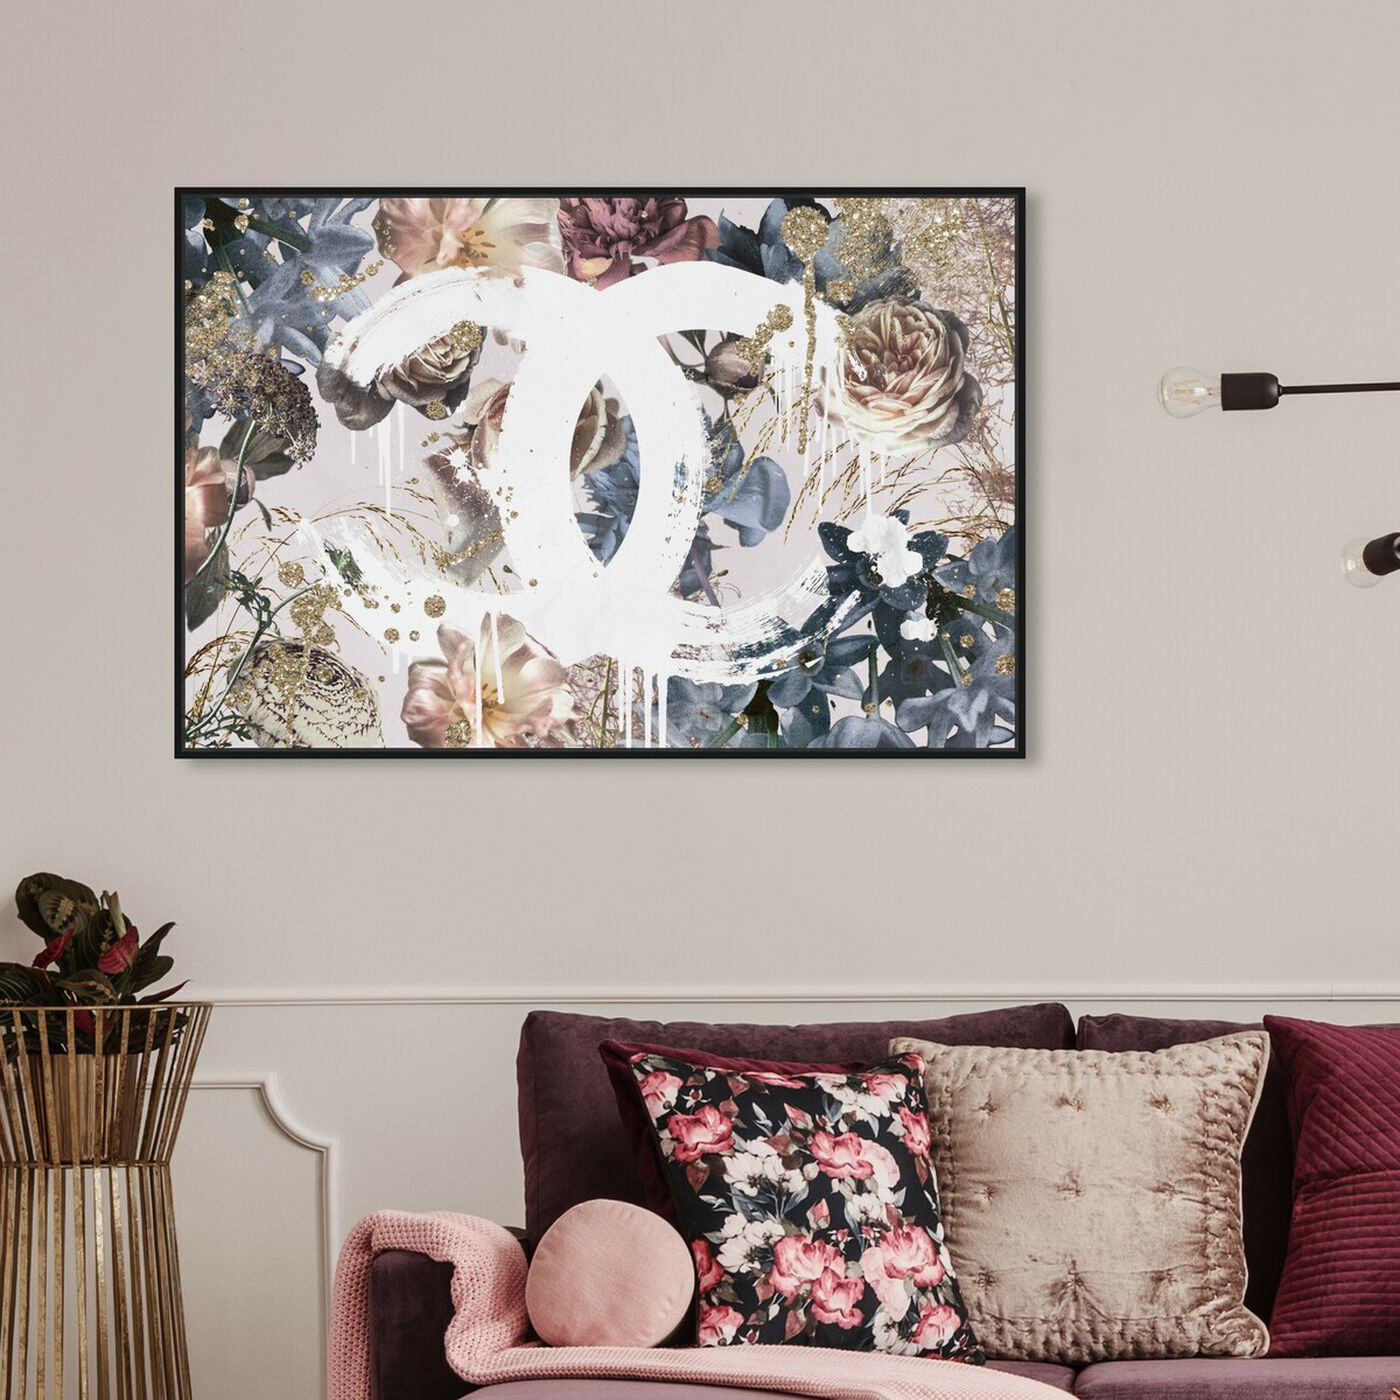 Hanging view of Soft Dutch Couture featuring fashion and glam and lifestyle art.